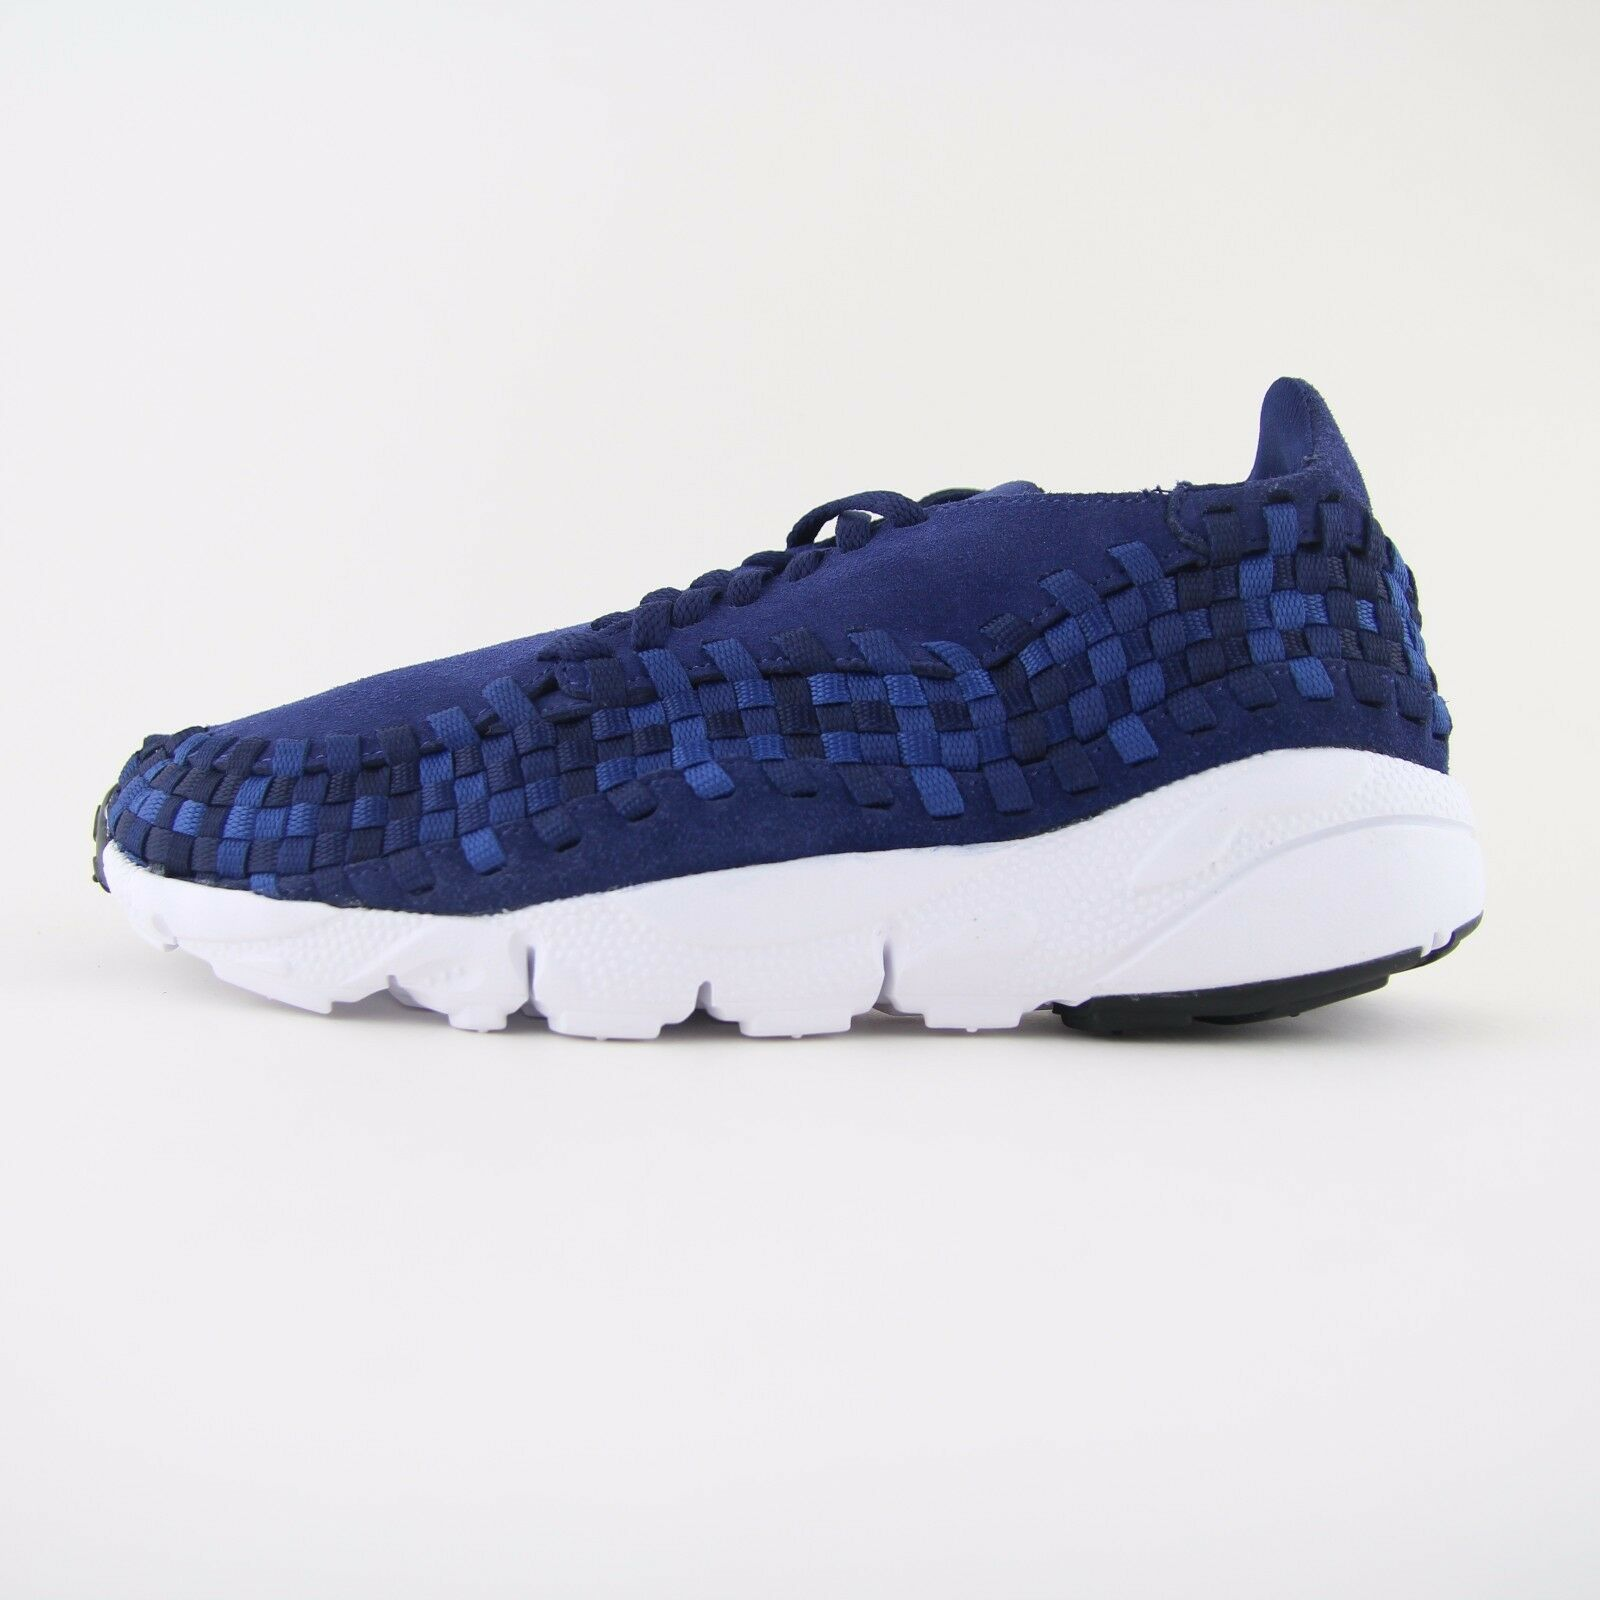 New Mens Nike Air Footscape Woven NM Binary bluee Trainers UK 7 BNIB 875797 400